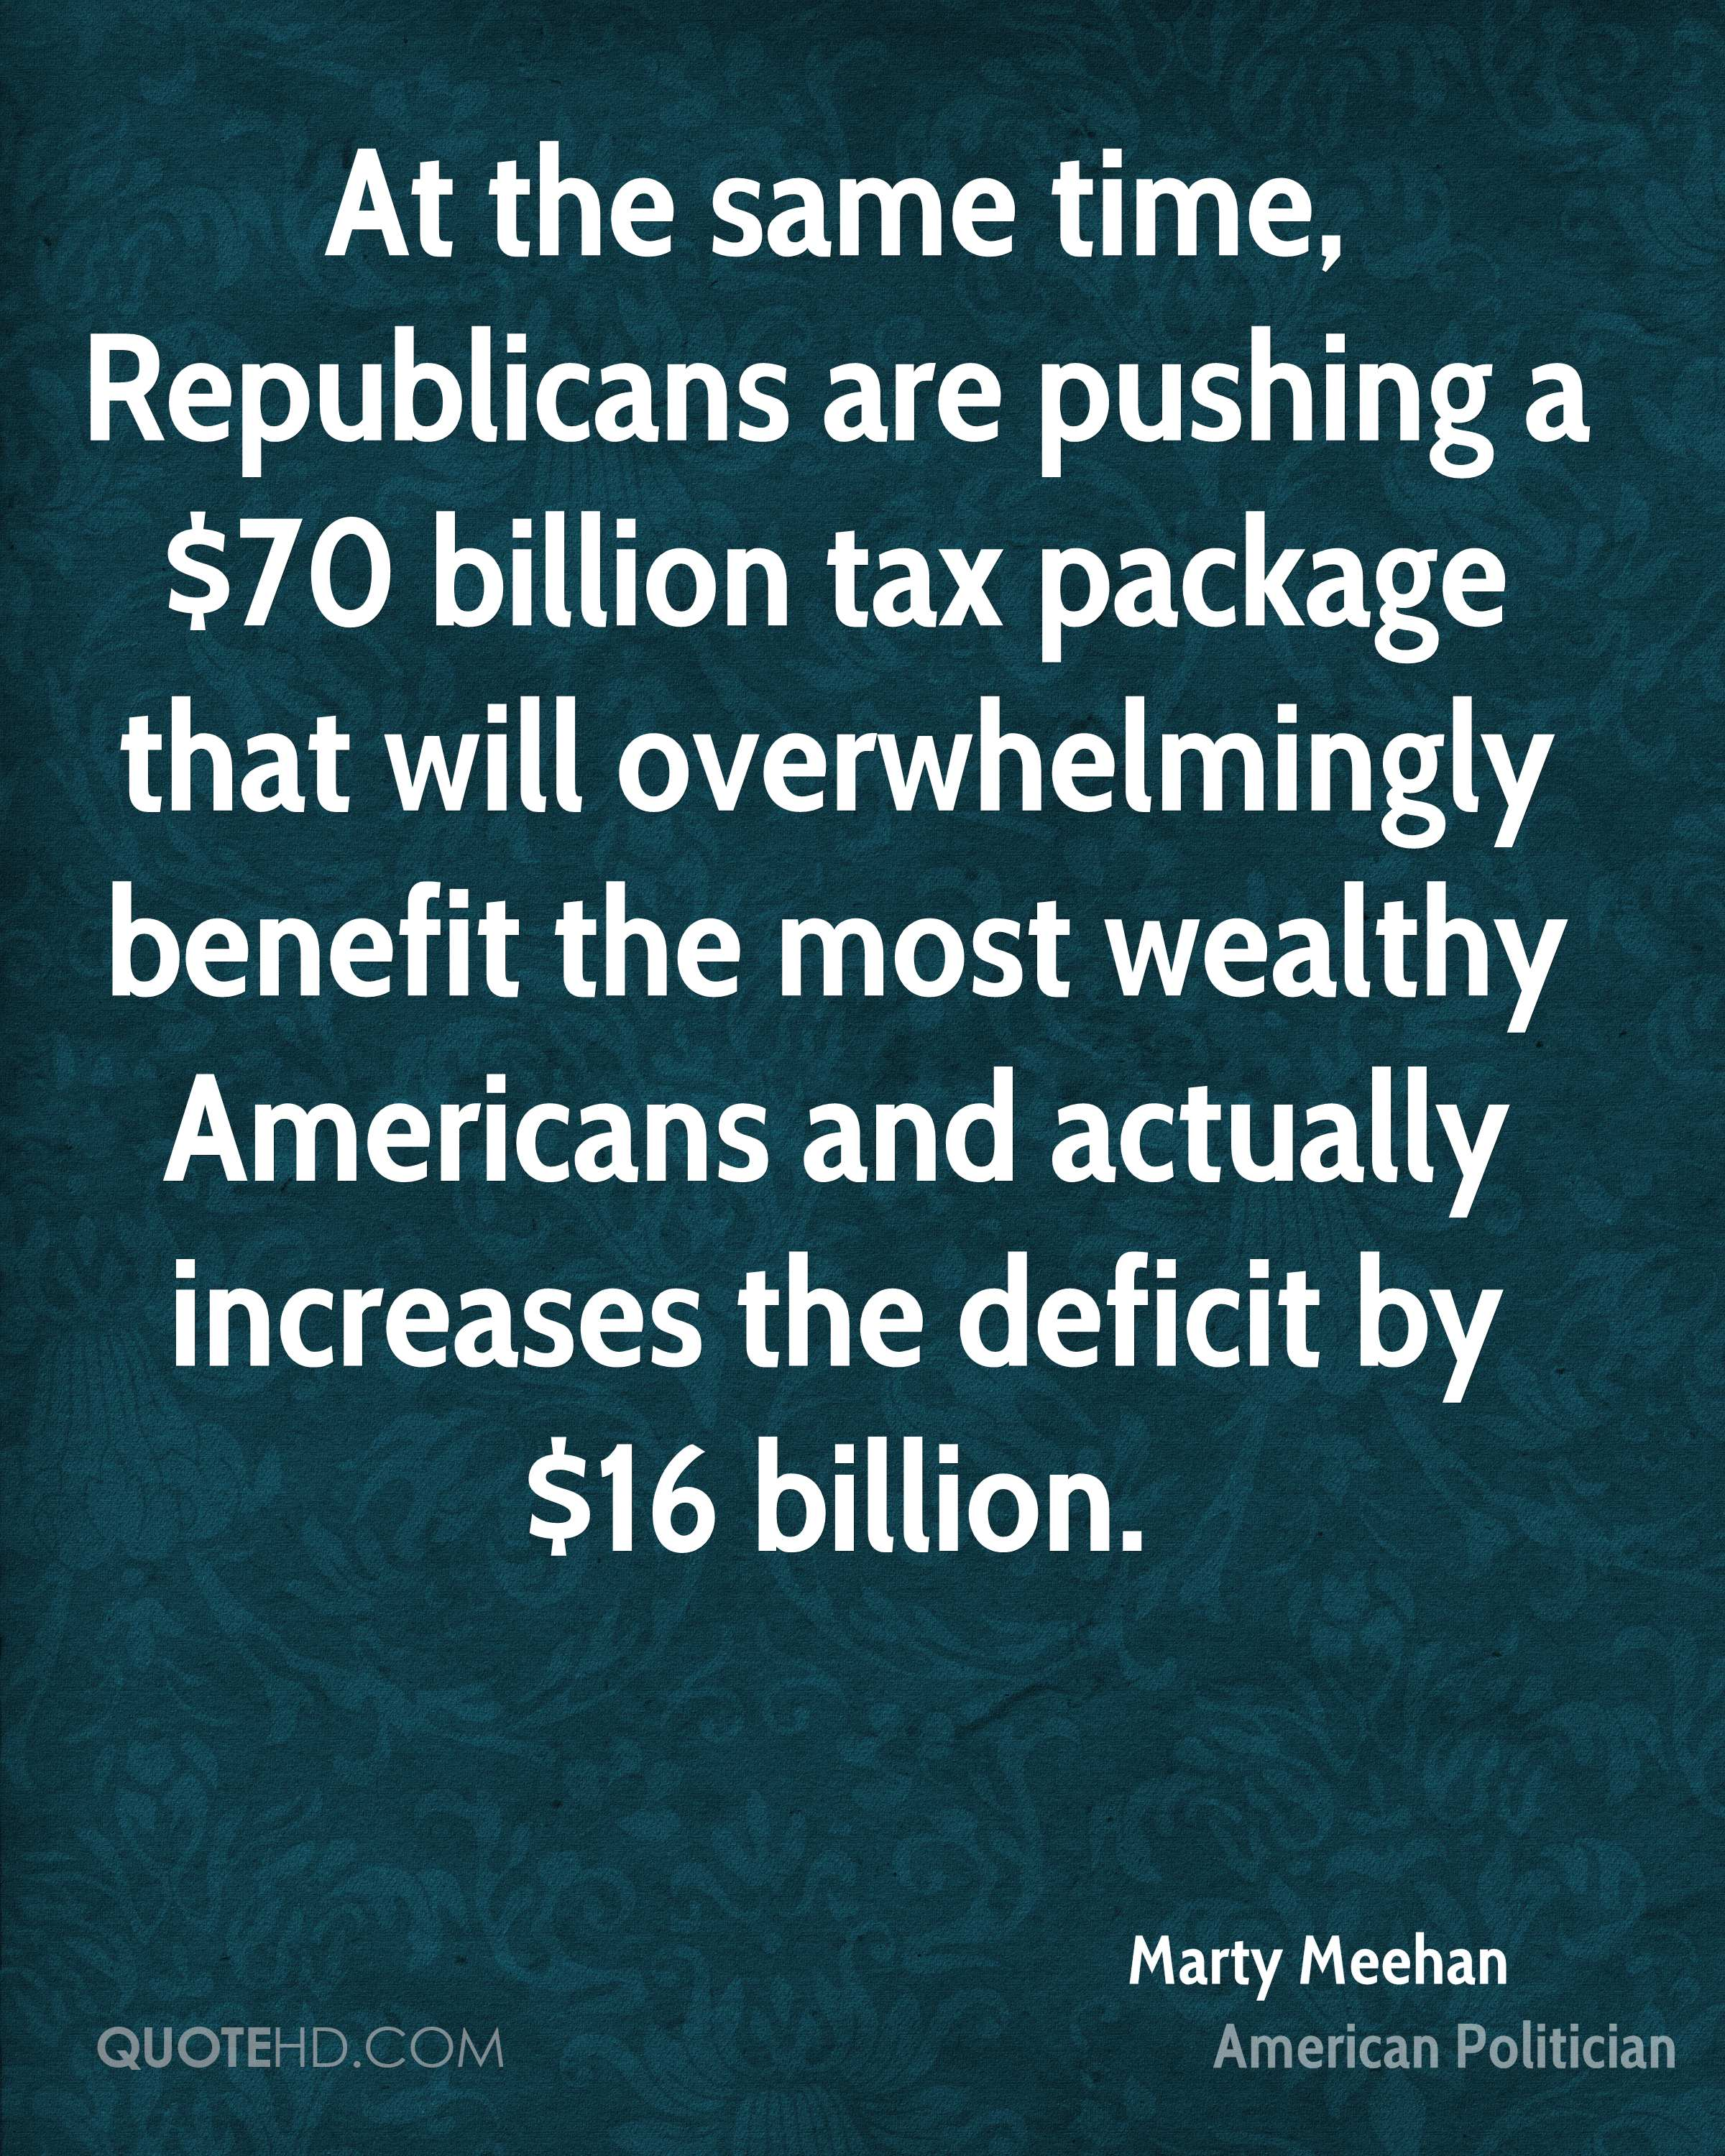 At the same time, Republicans are pushing a $70 billion tax package that will overwhelmingly benefit the most wealthy Americans and actually increases the deficit by $16 billion.